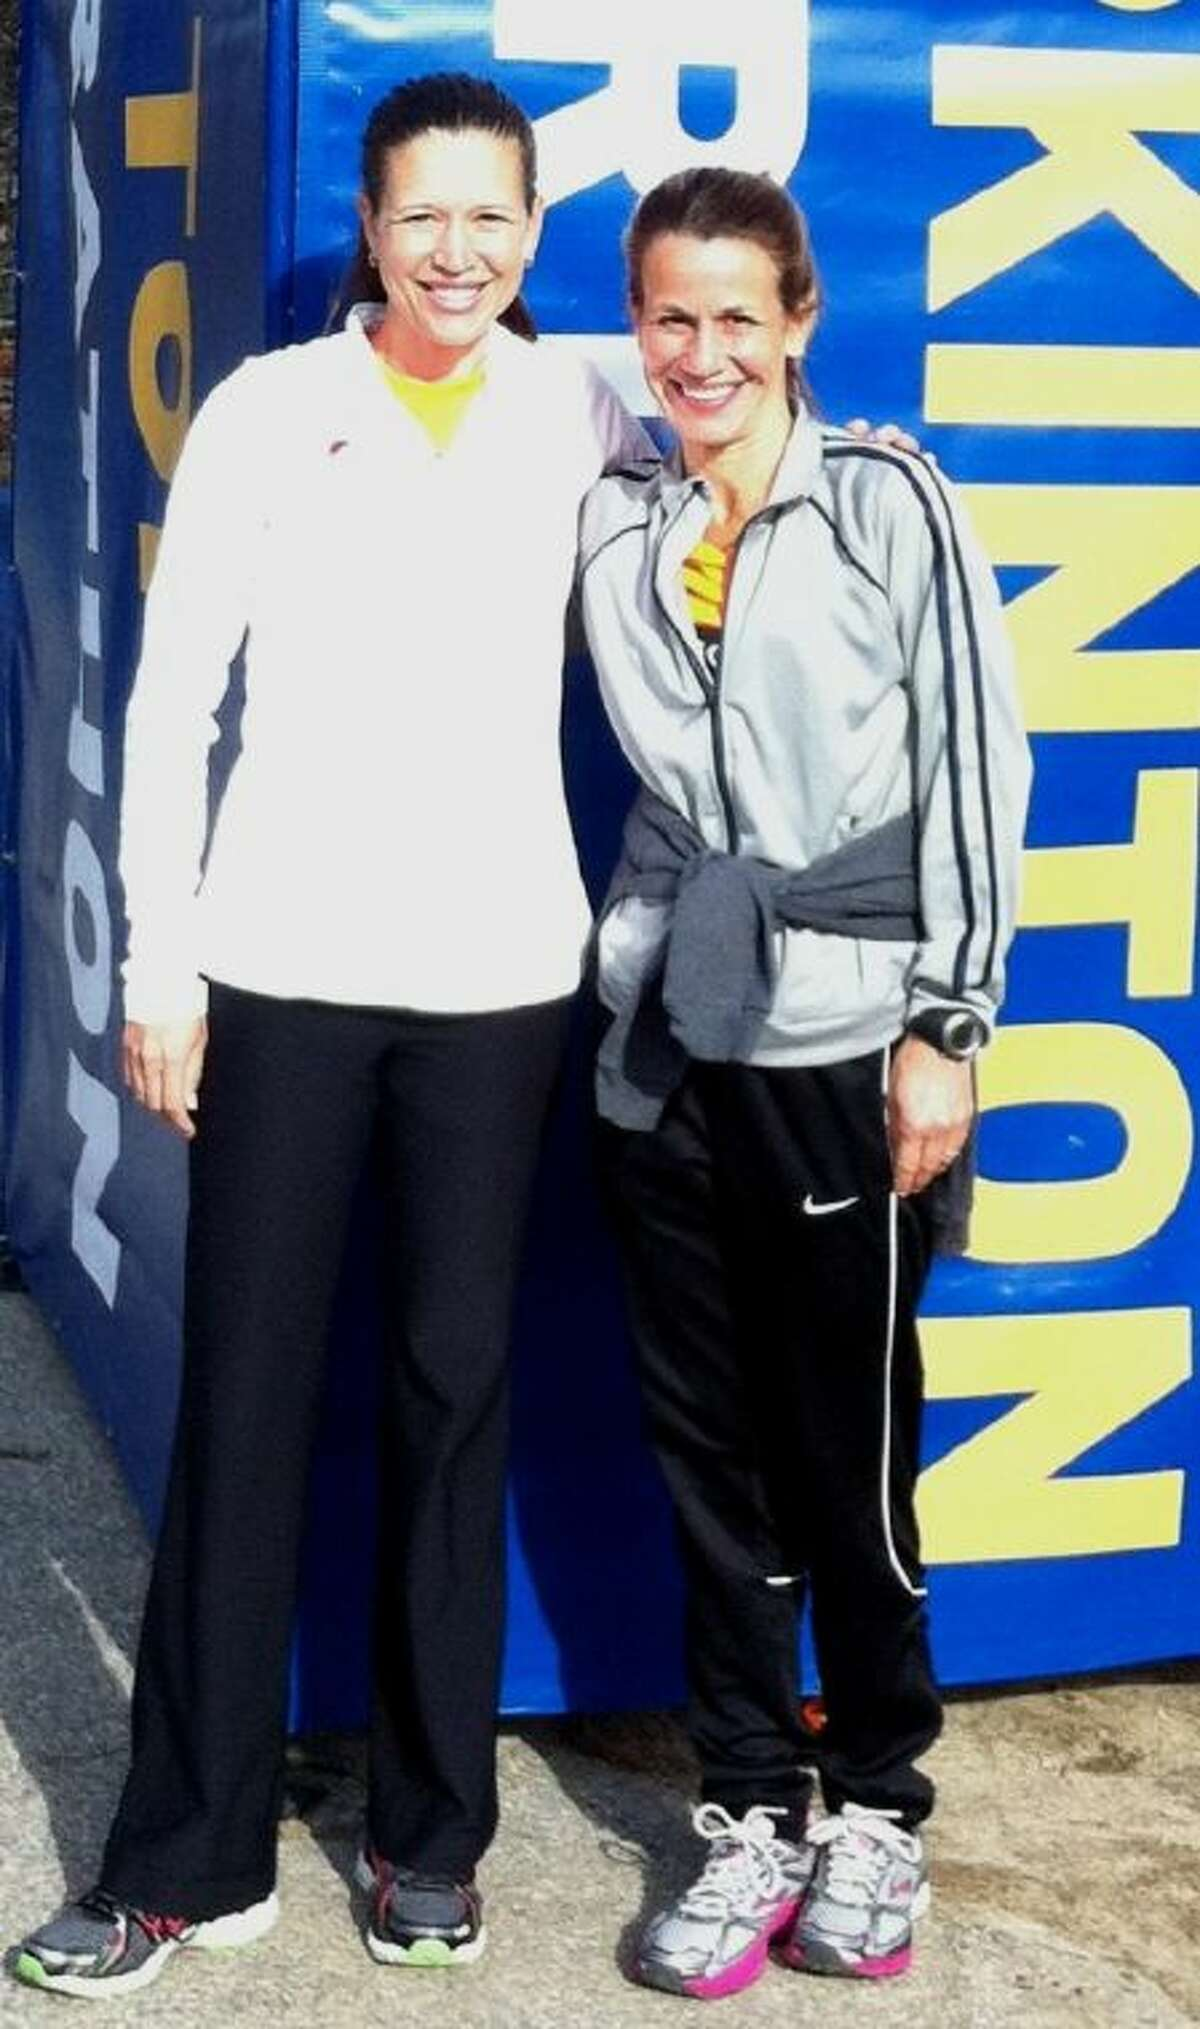 Jessica Menendez, left, and Lisa Hill trained and qualified together to run Monday's Boston Marathon. Both completed the marathon and witnessed the explosions.